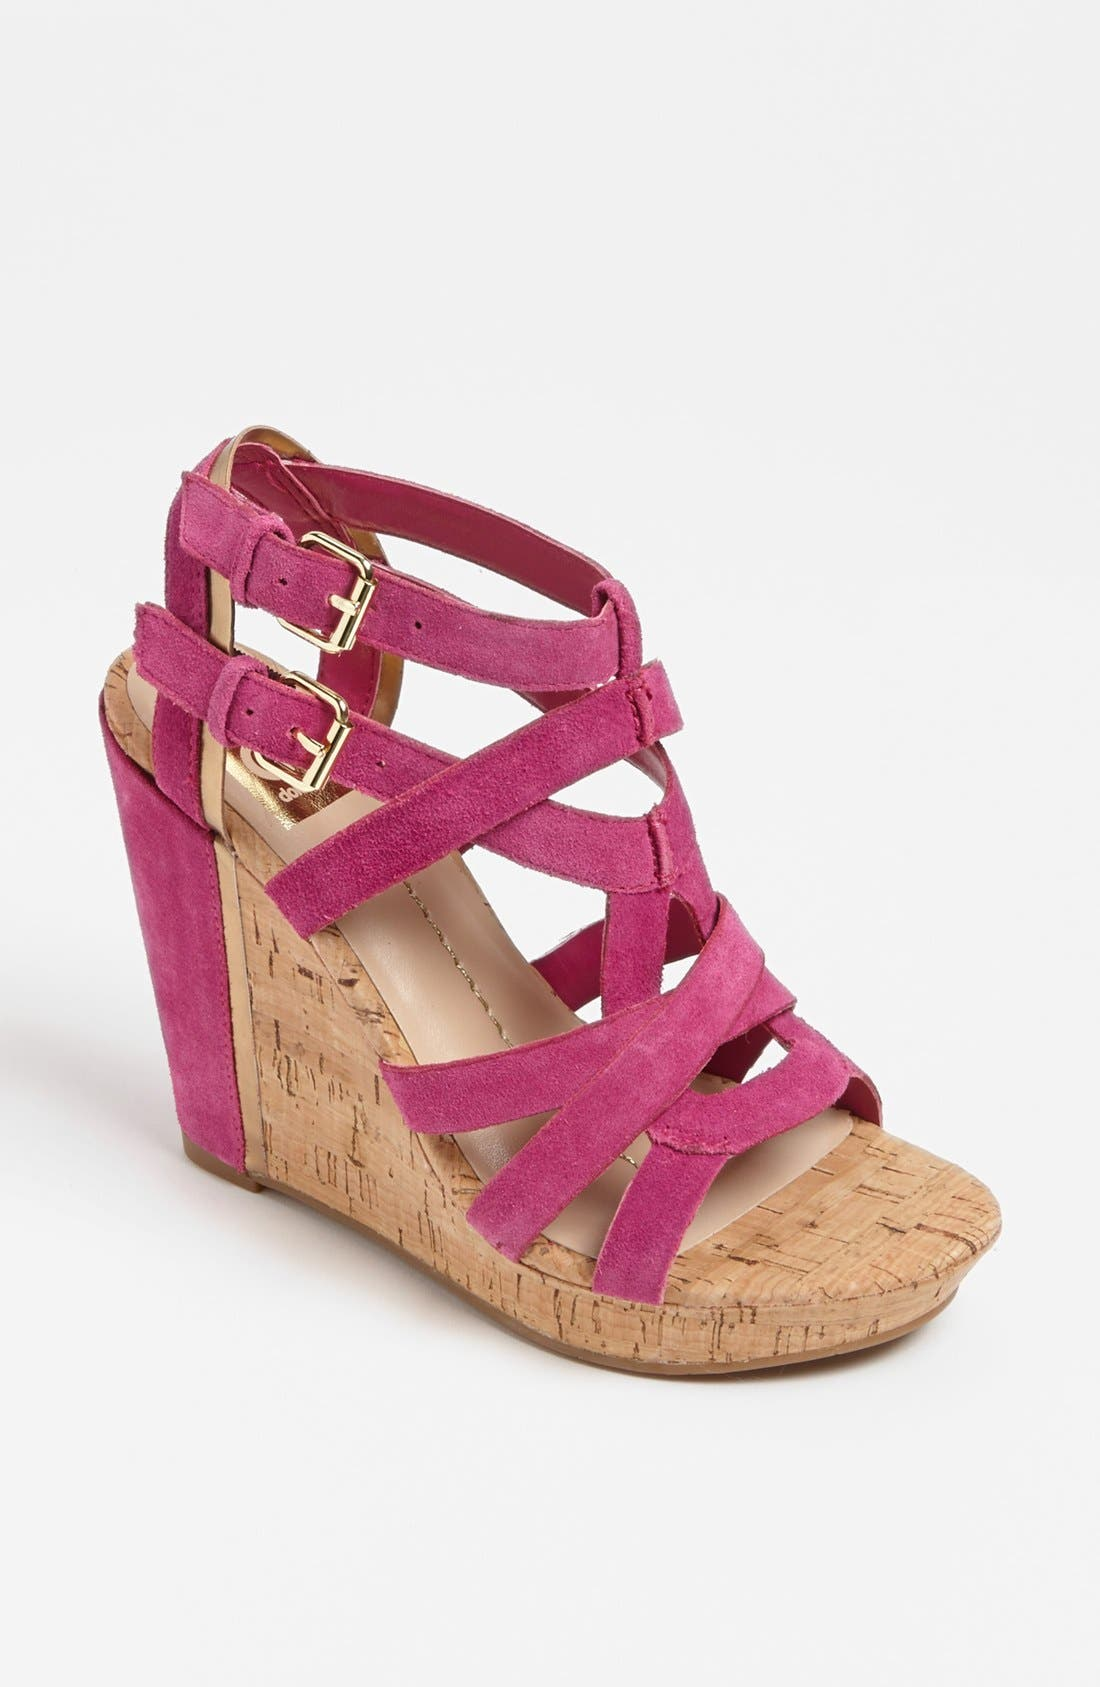 Alternate Image 1 Selected - DV by Dolce Vita 'Tabia' Sandal